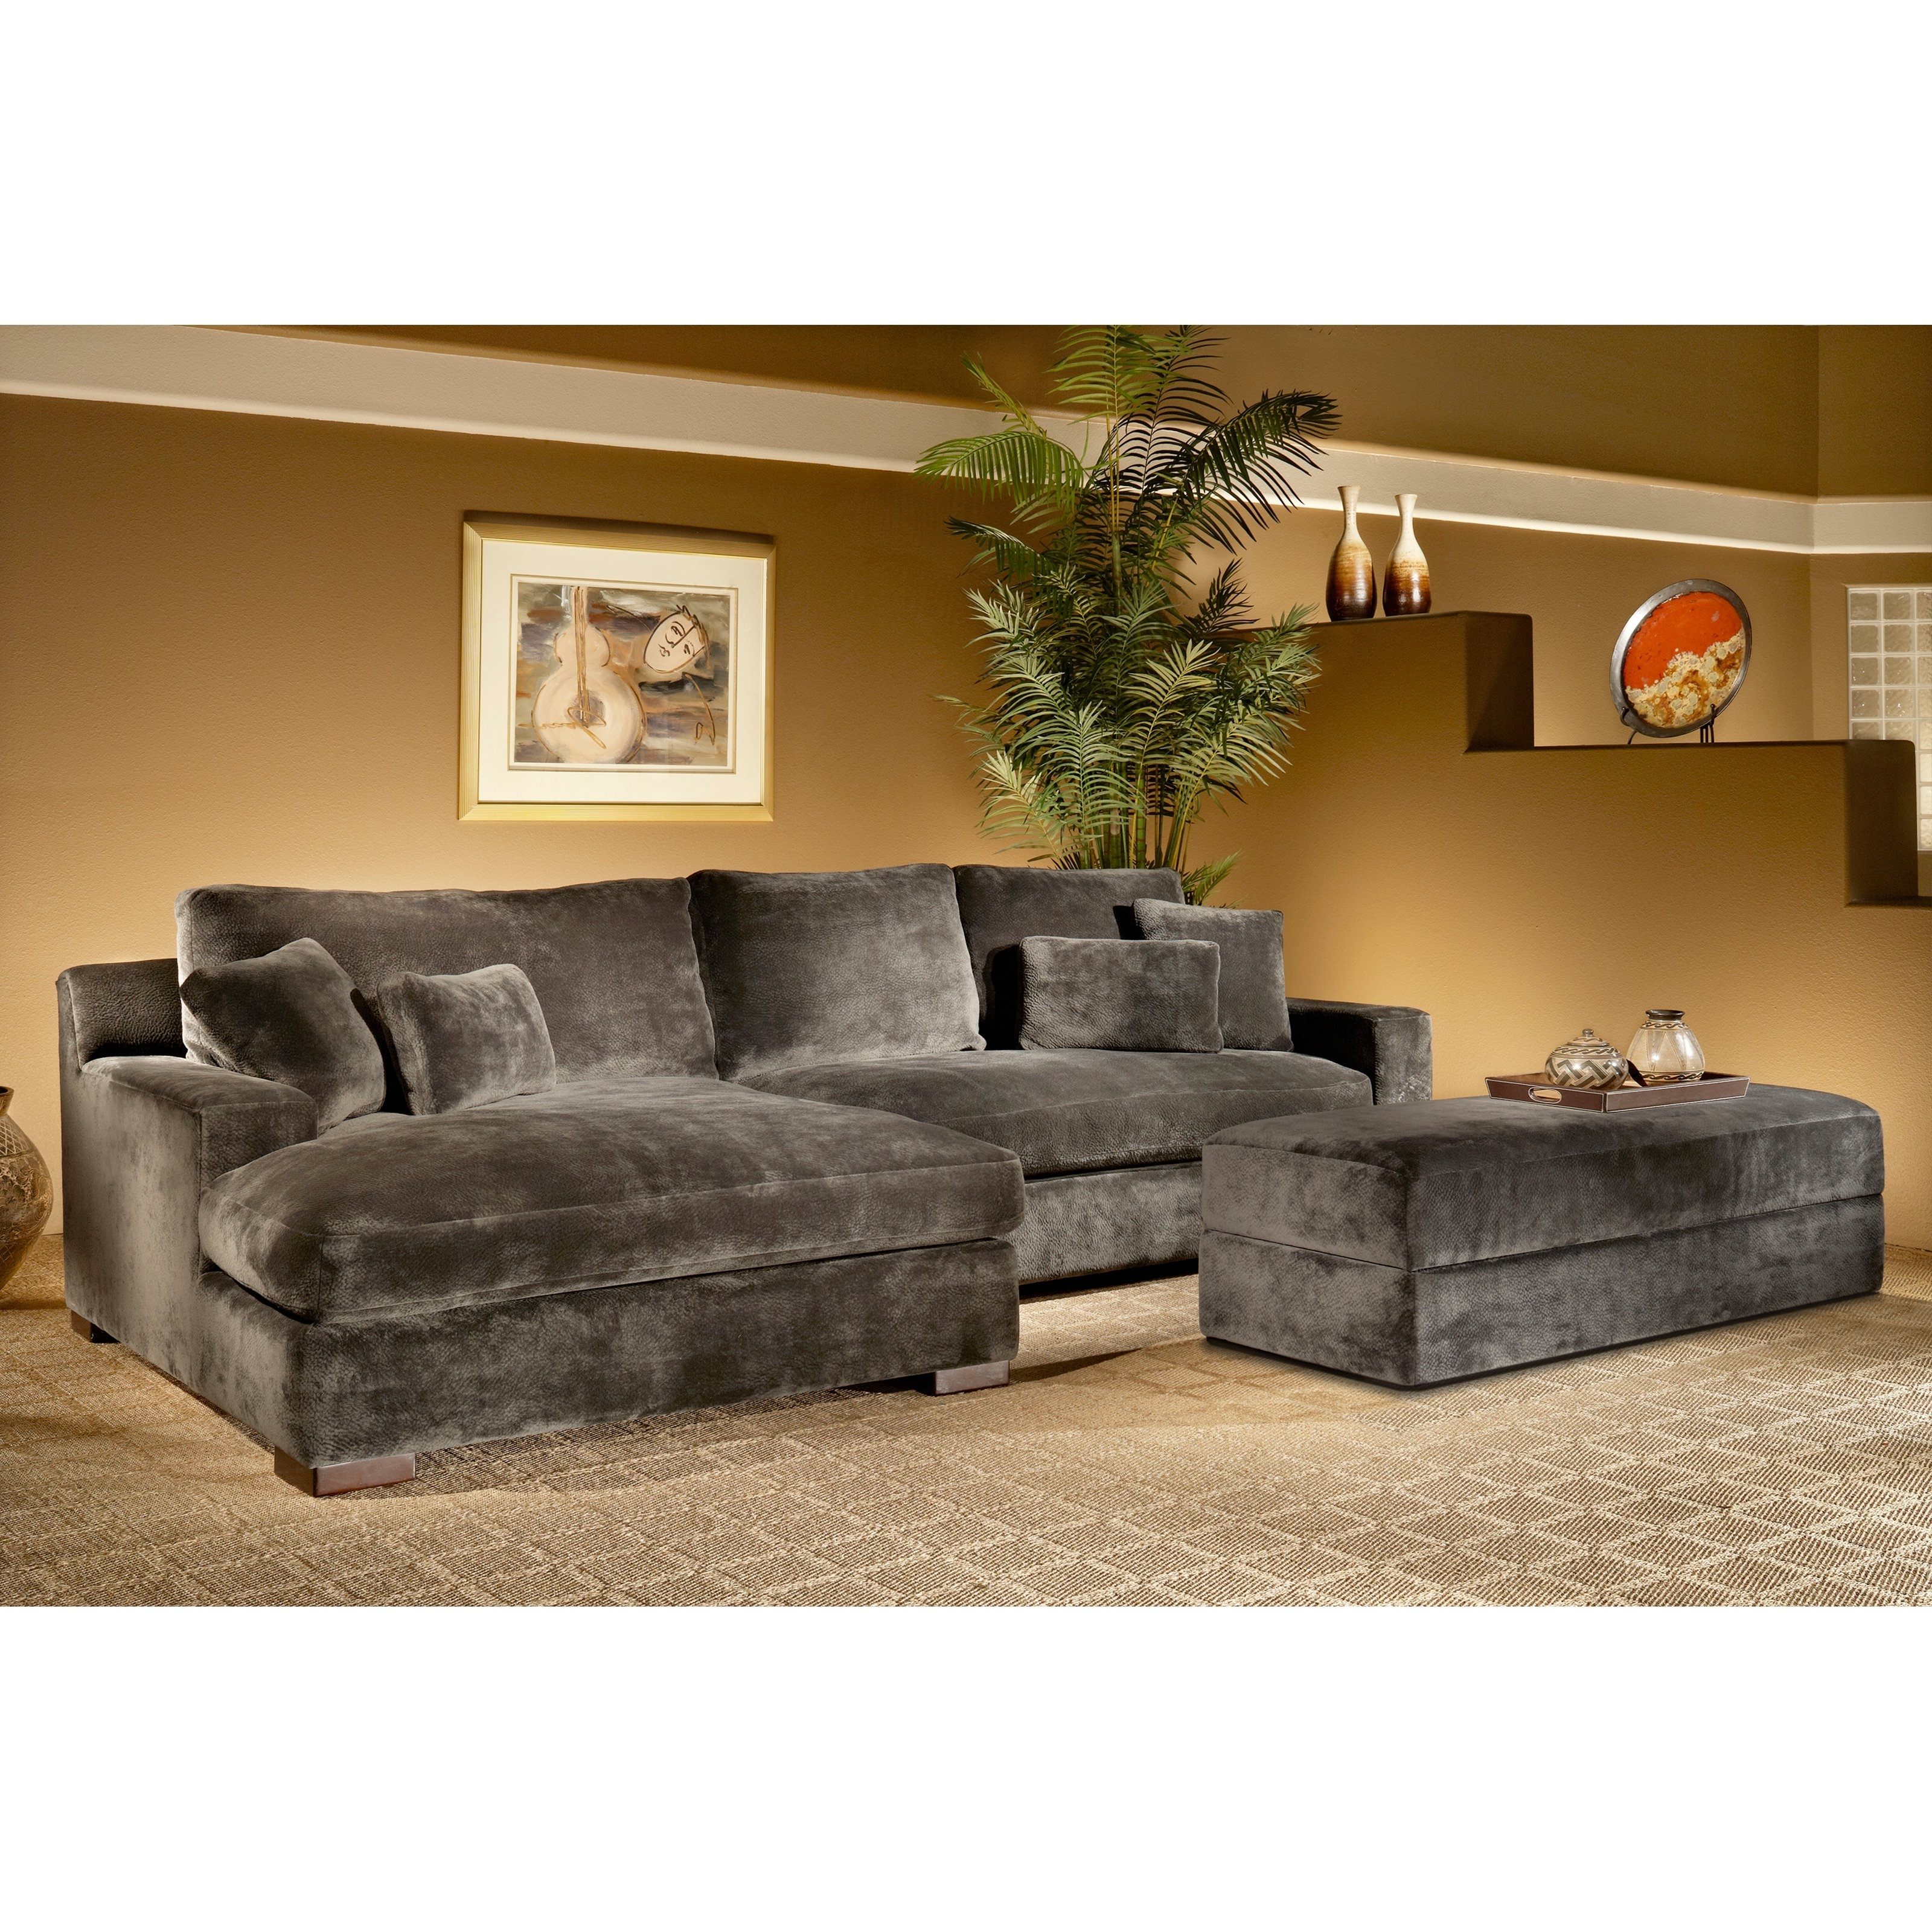 Excellent 2 Piece Sectional Sofa In Fairmont Designs Doris 2 Piece Throughout Aspen 2 Piece Sleeper Sectionals With Laf Chaise (Image 12 of 25)